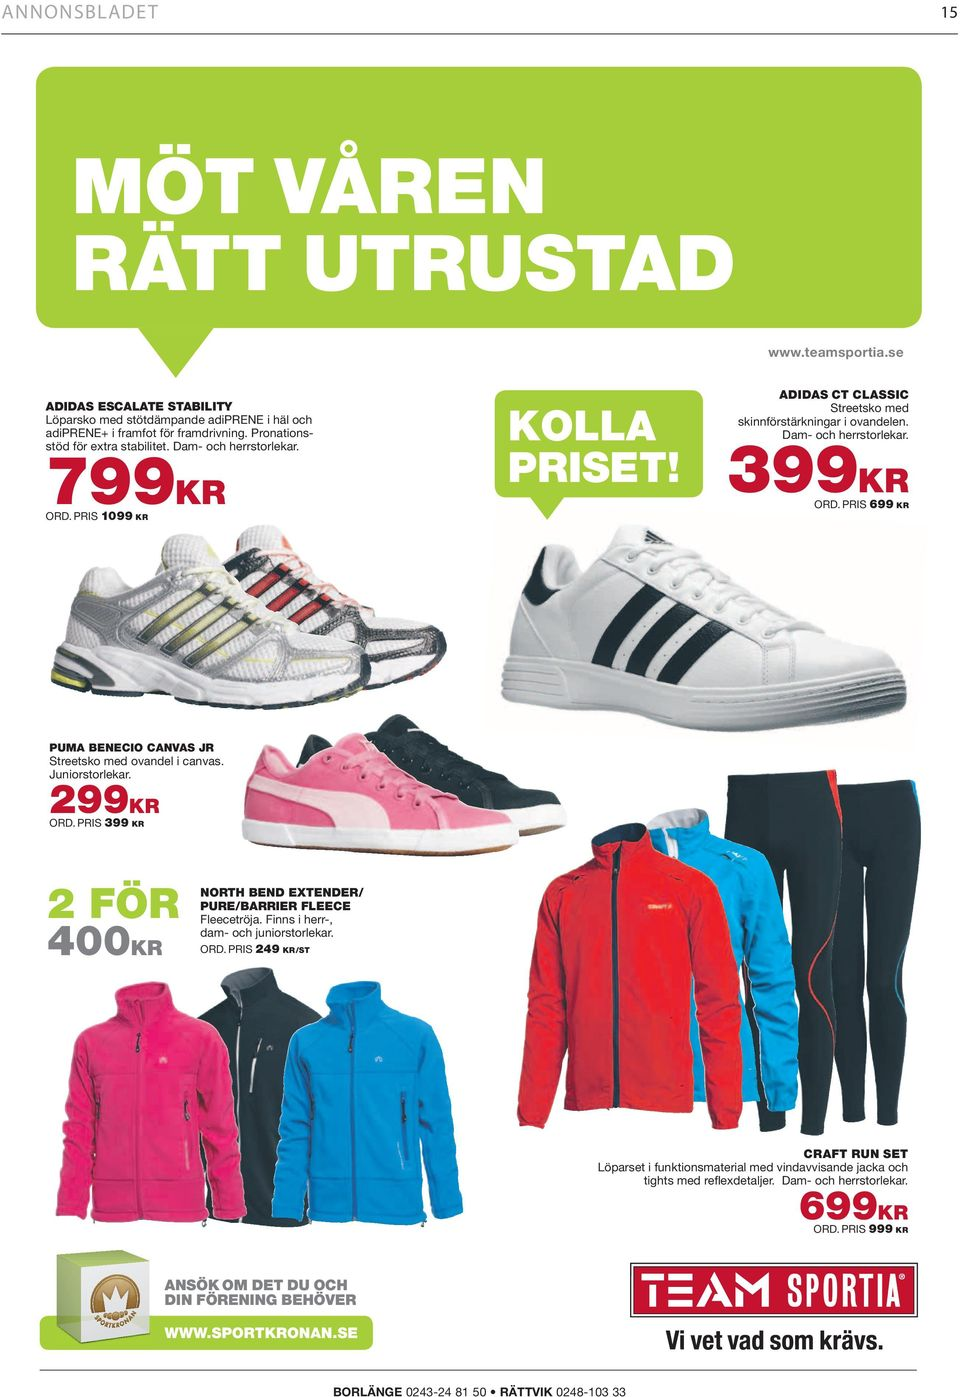 PRIS 699 KR PUMA BENECIO CANVAS JR Streetsko med ovandel i canvas. Juniorstorlekar. 299KR ORD. PRIS 399 KR 2 FÖR 400KR NORTH BEND EXTENDER/ PURE/BARRIER FLEECE Fleecetröja.